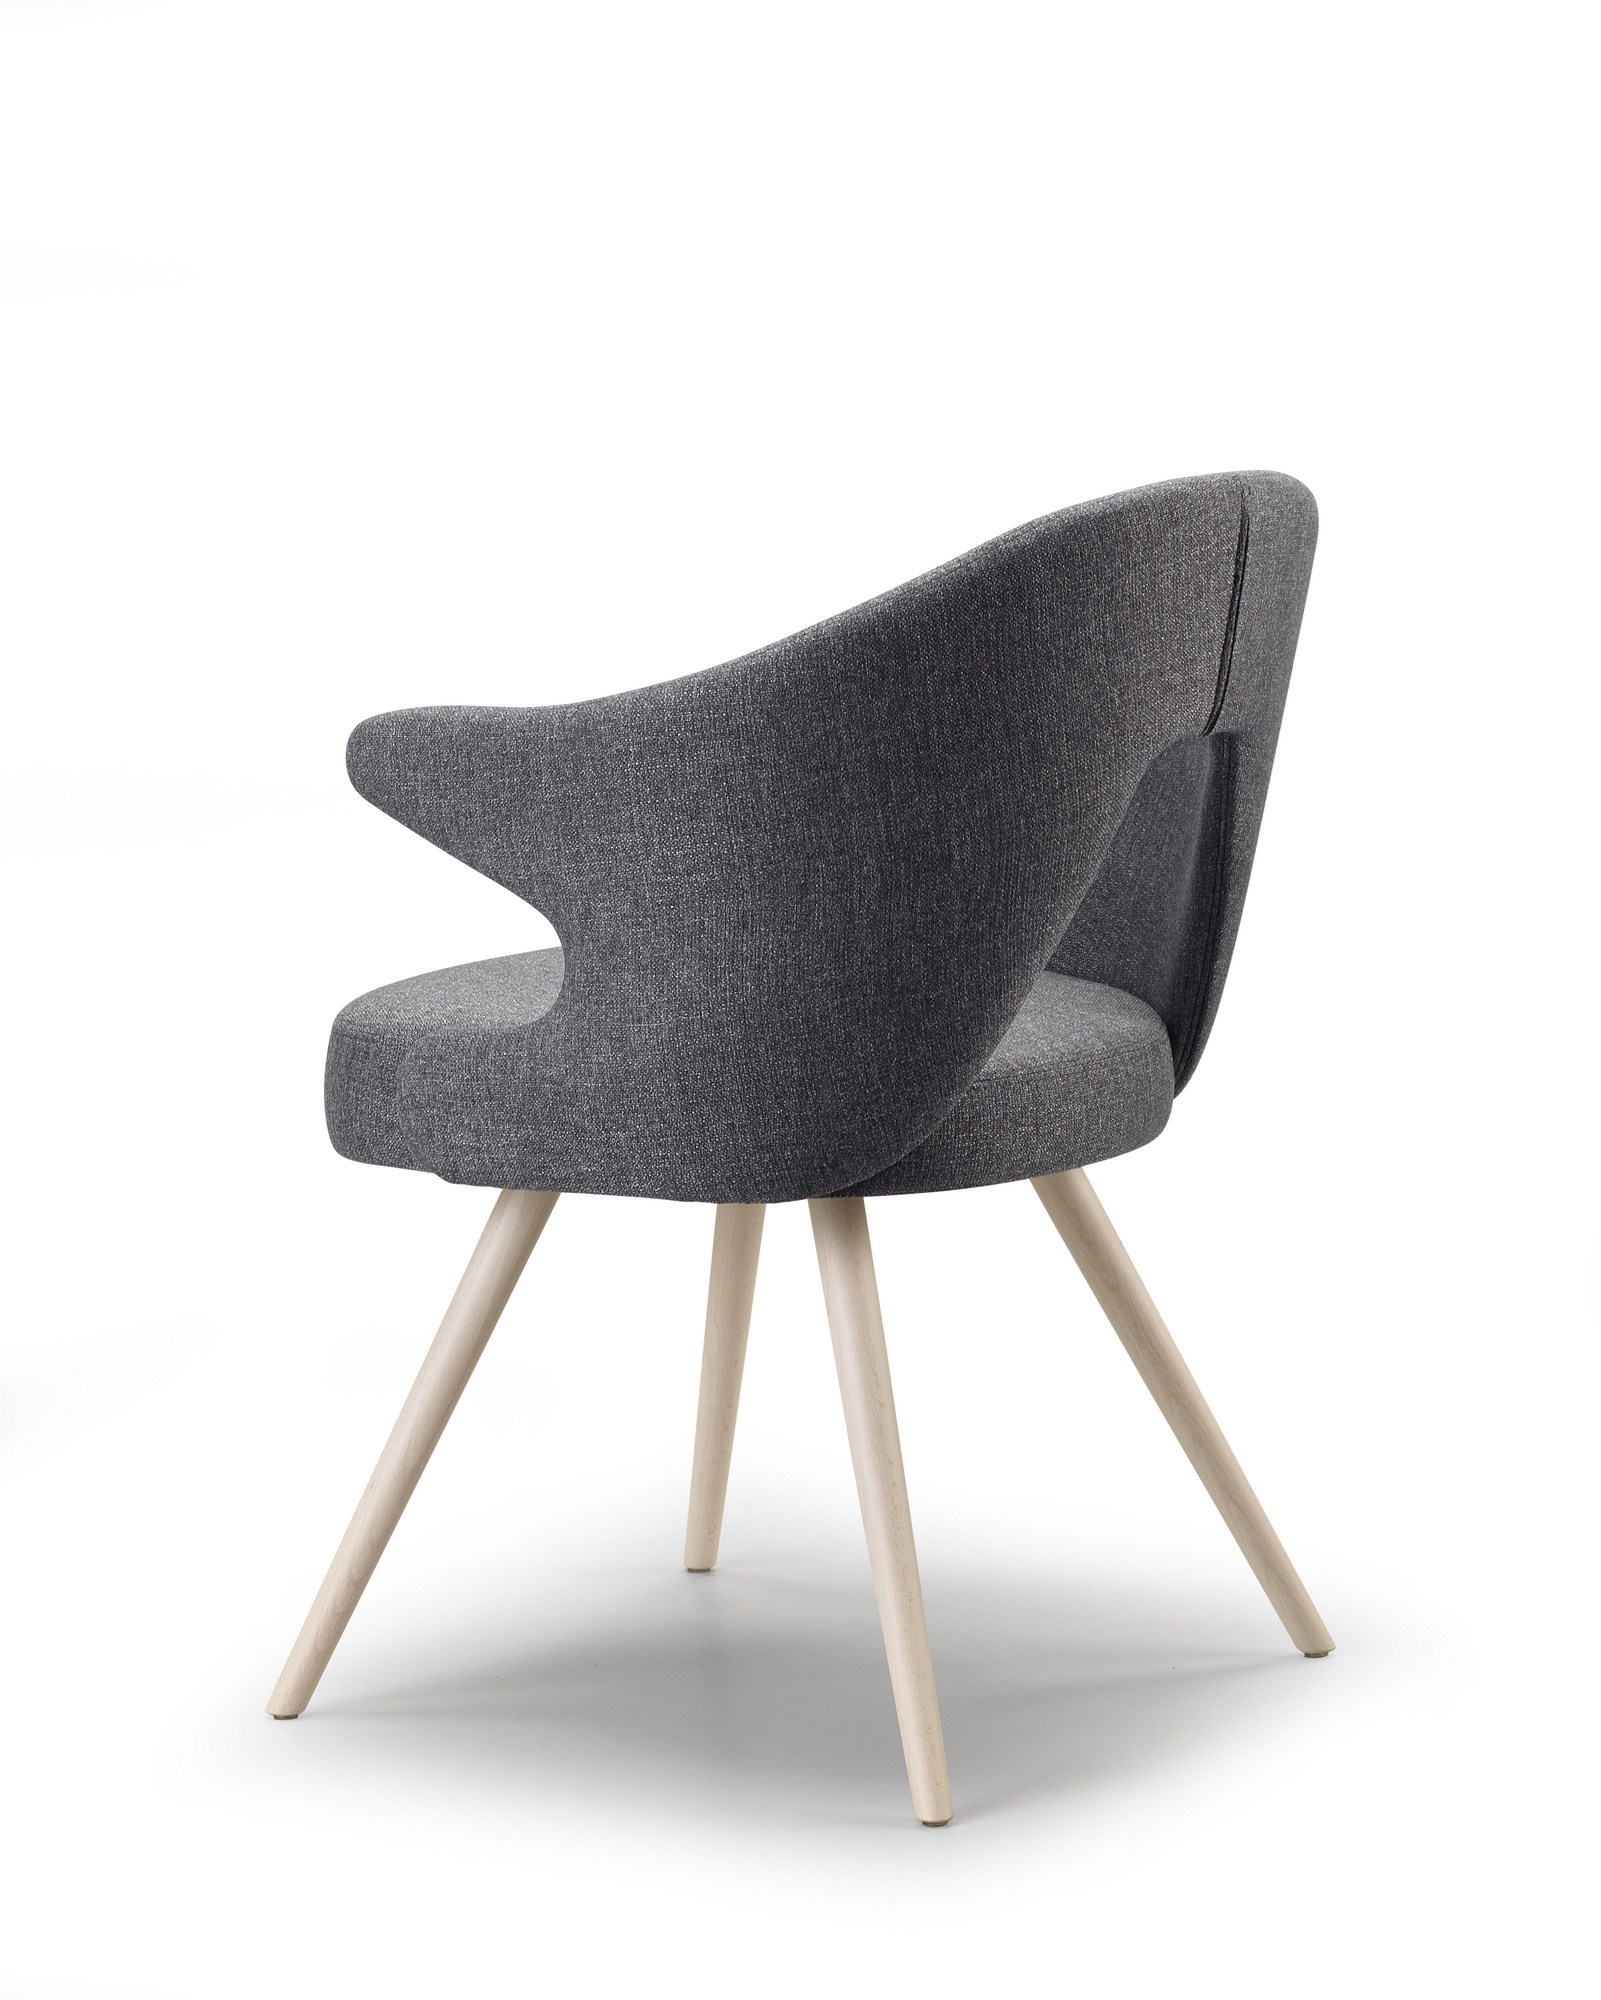 You Chair by Simone Micheli for Scab Design